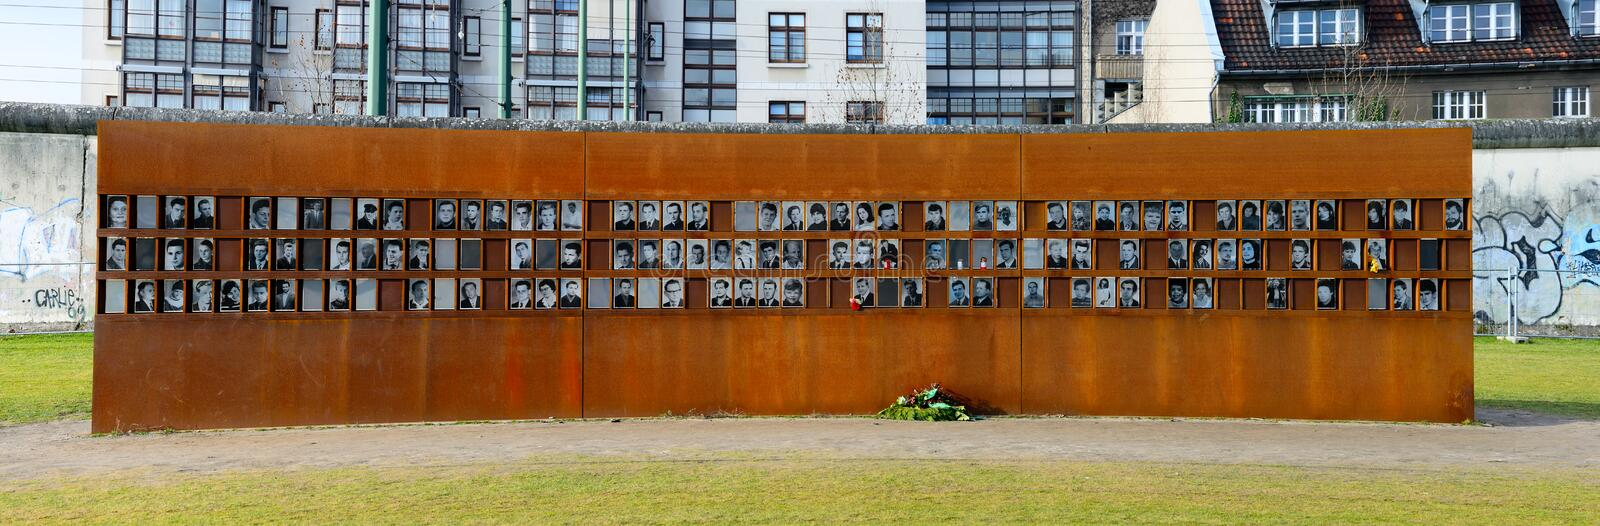 Victims of the berlin wall. Memorial on bernauer street in berlin, germany royalty free stock photos